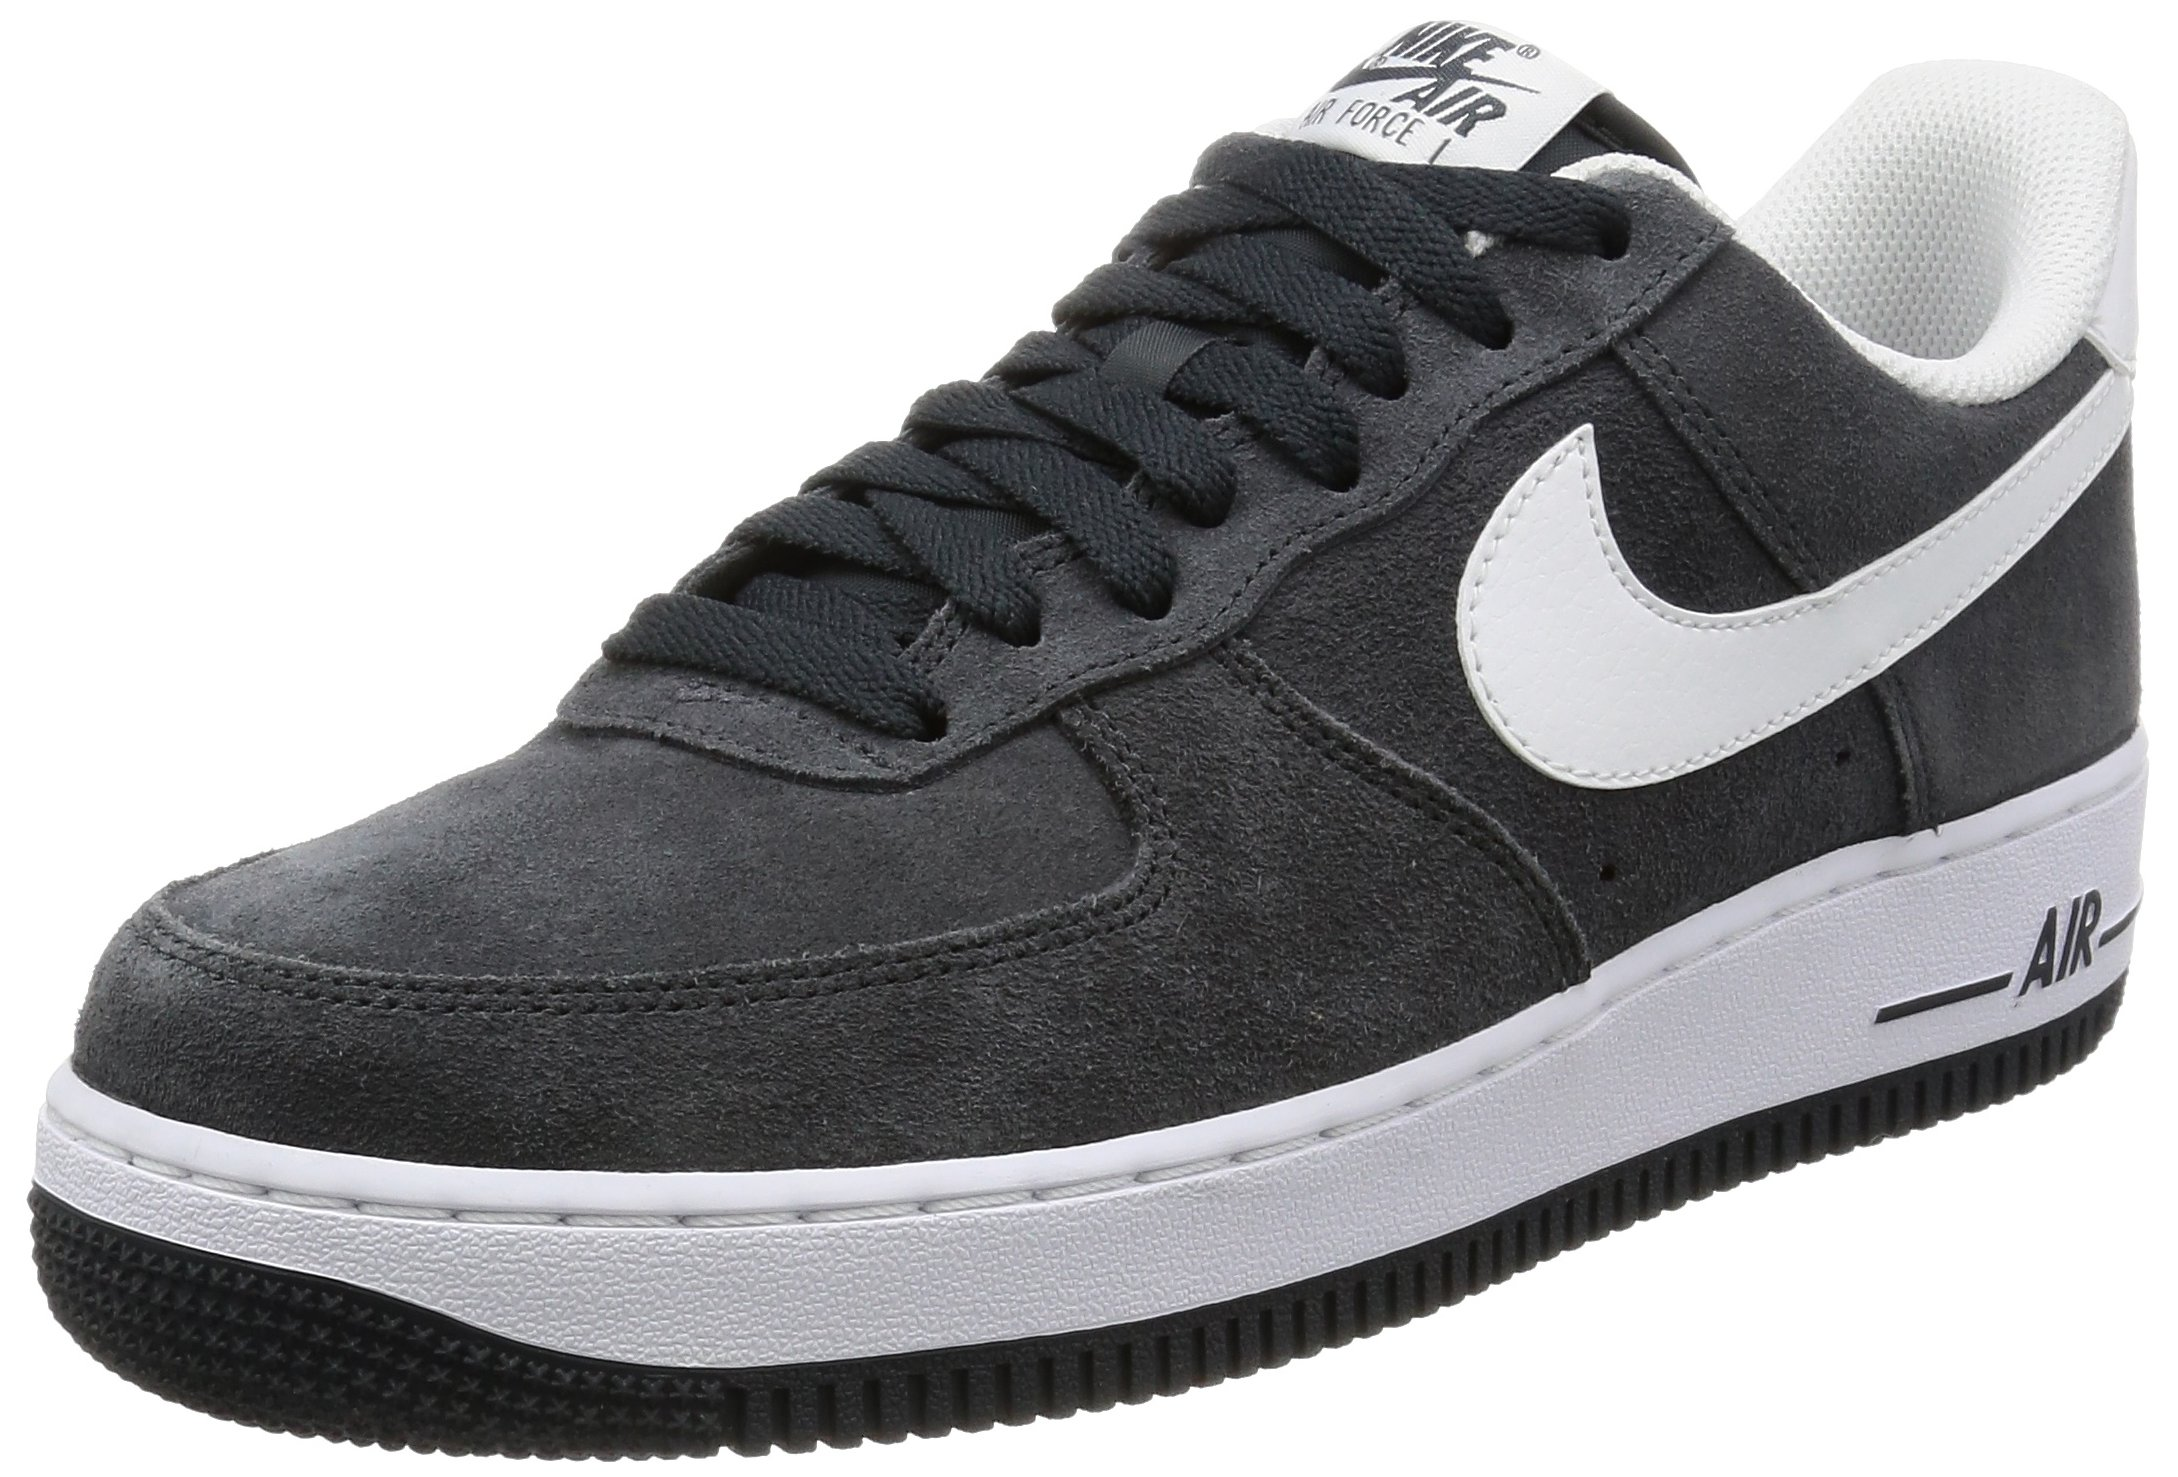 NIKE Men's Air Force 1 '07 Anthracite/White Basketball Shoe 10 Men US